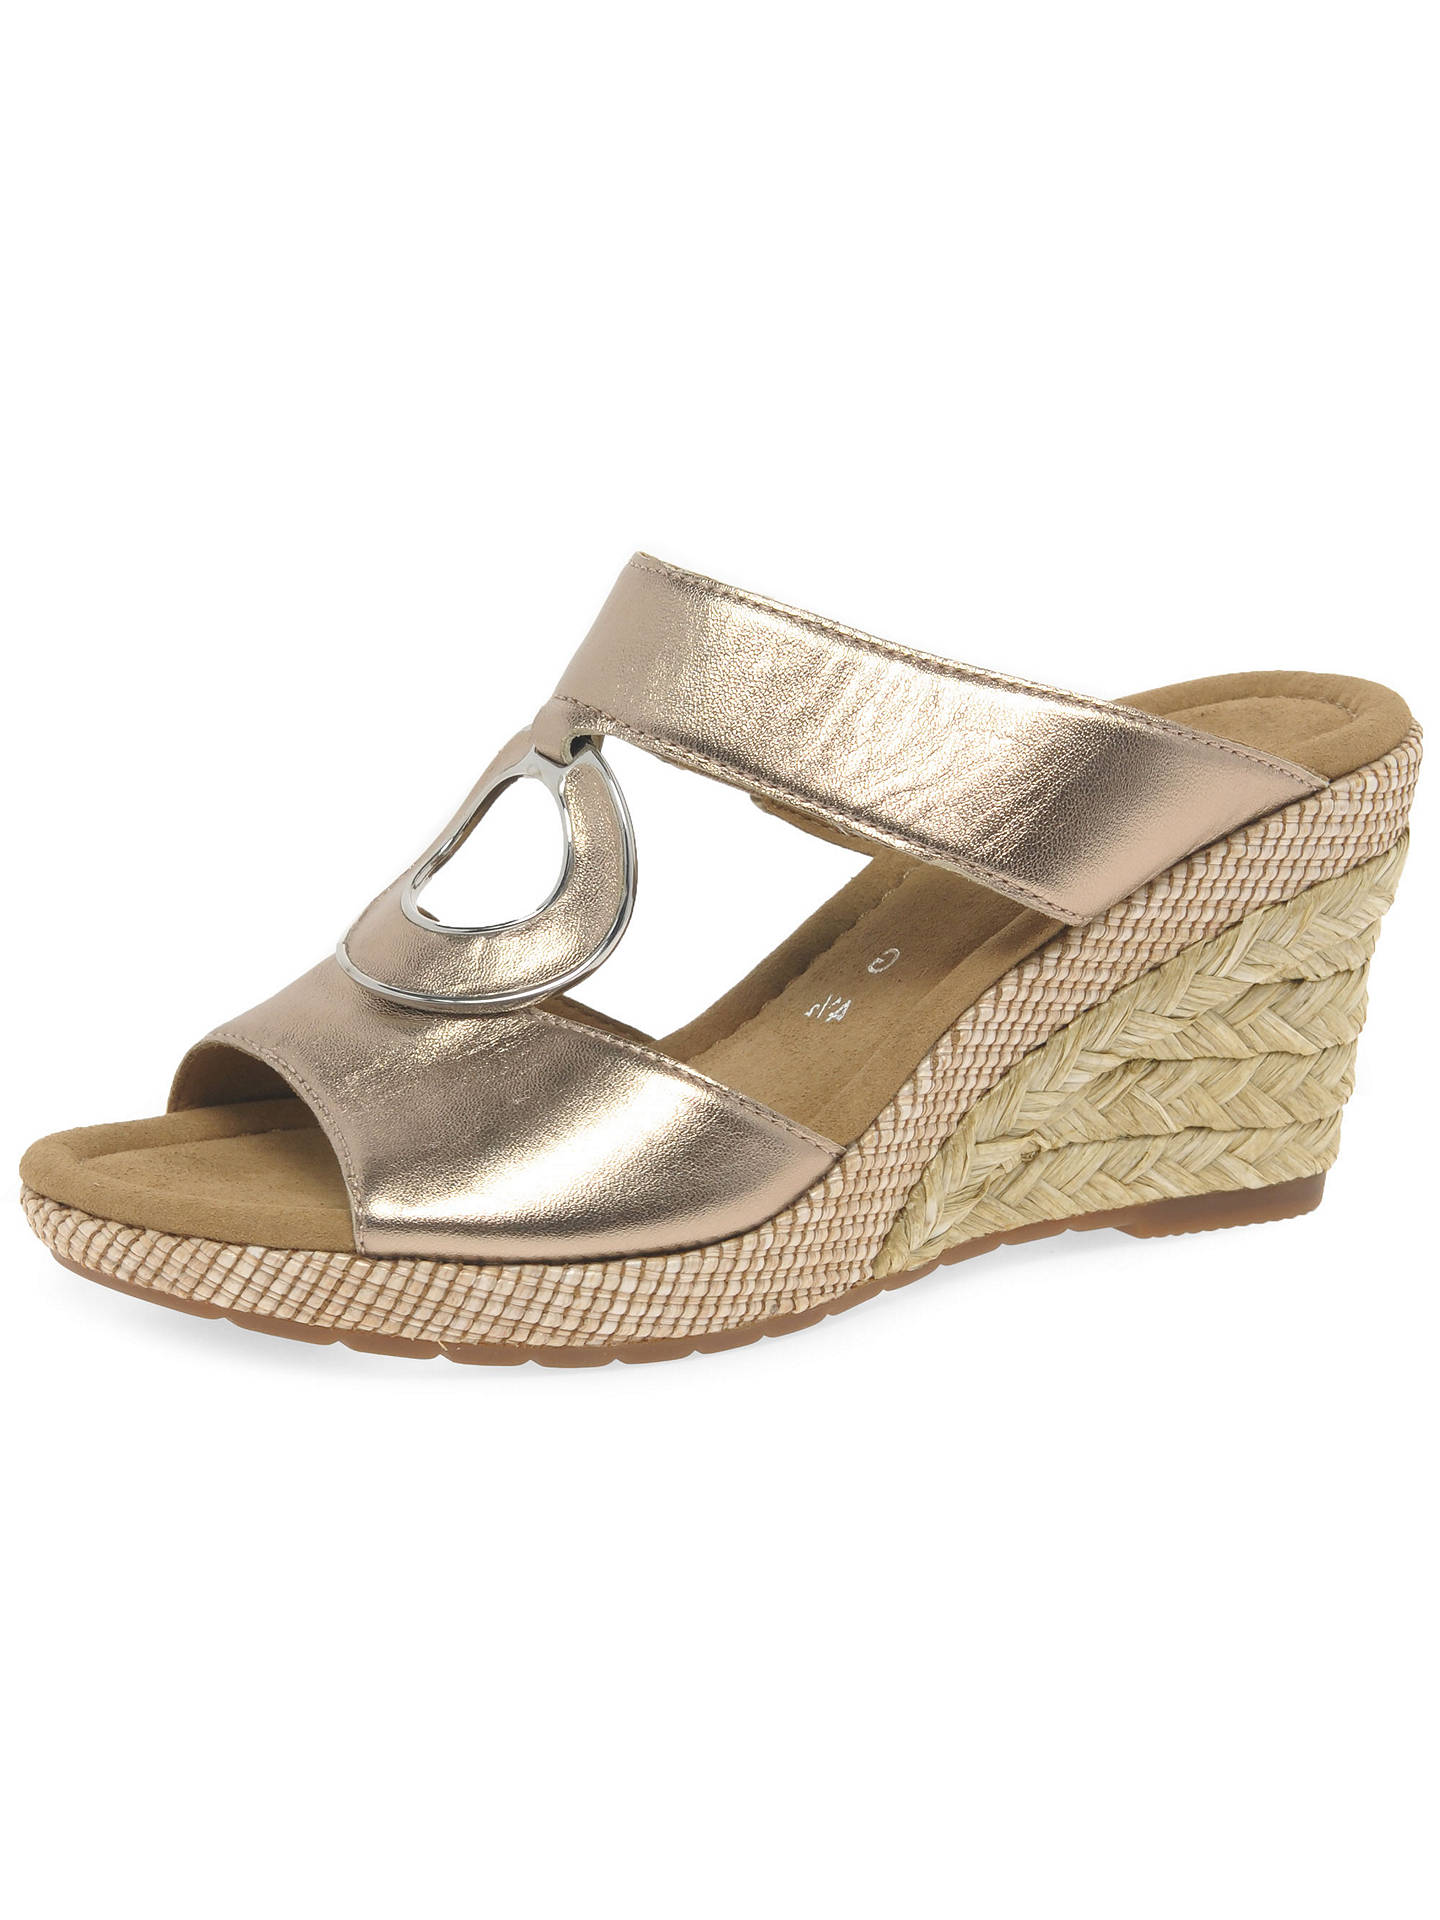 9395021452a1 ... Buy Gabor Sizzle Wide Fit Wedge Heeled Sandals